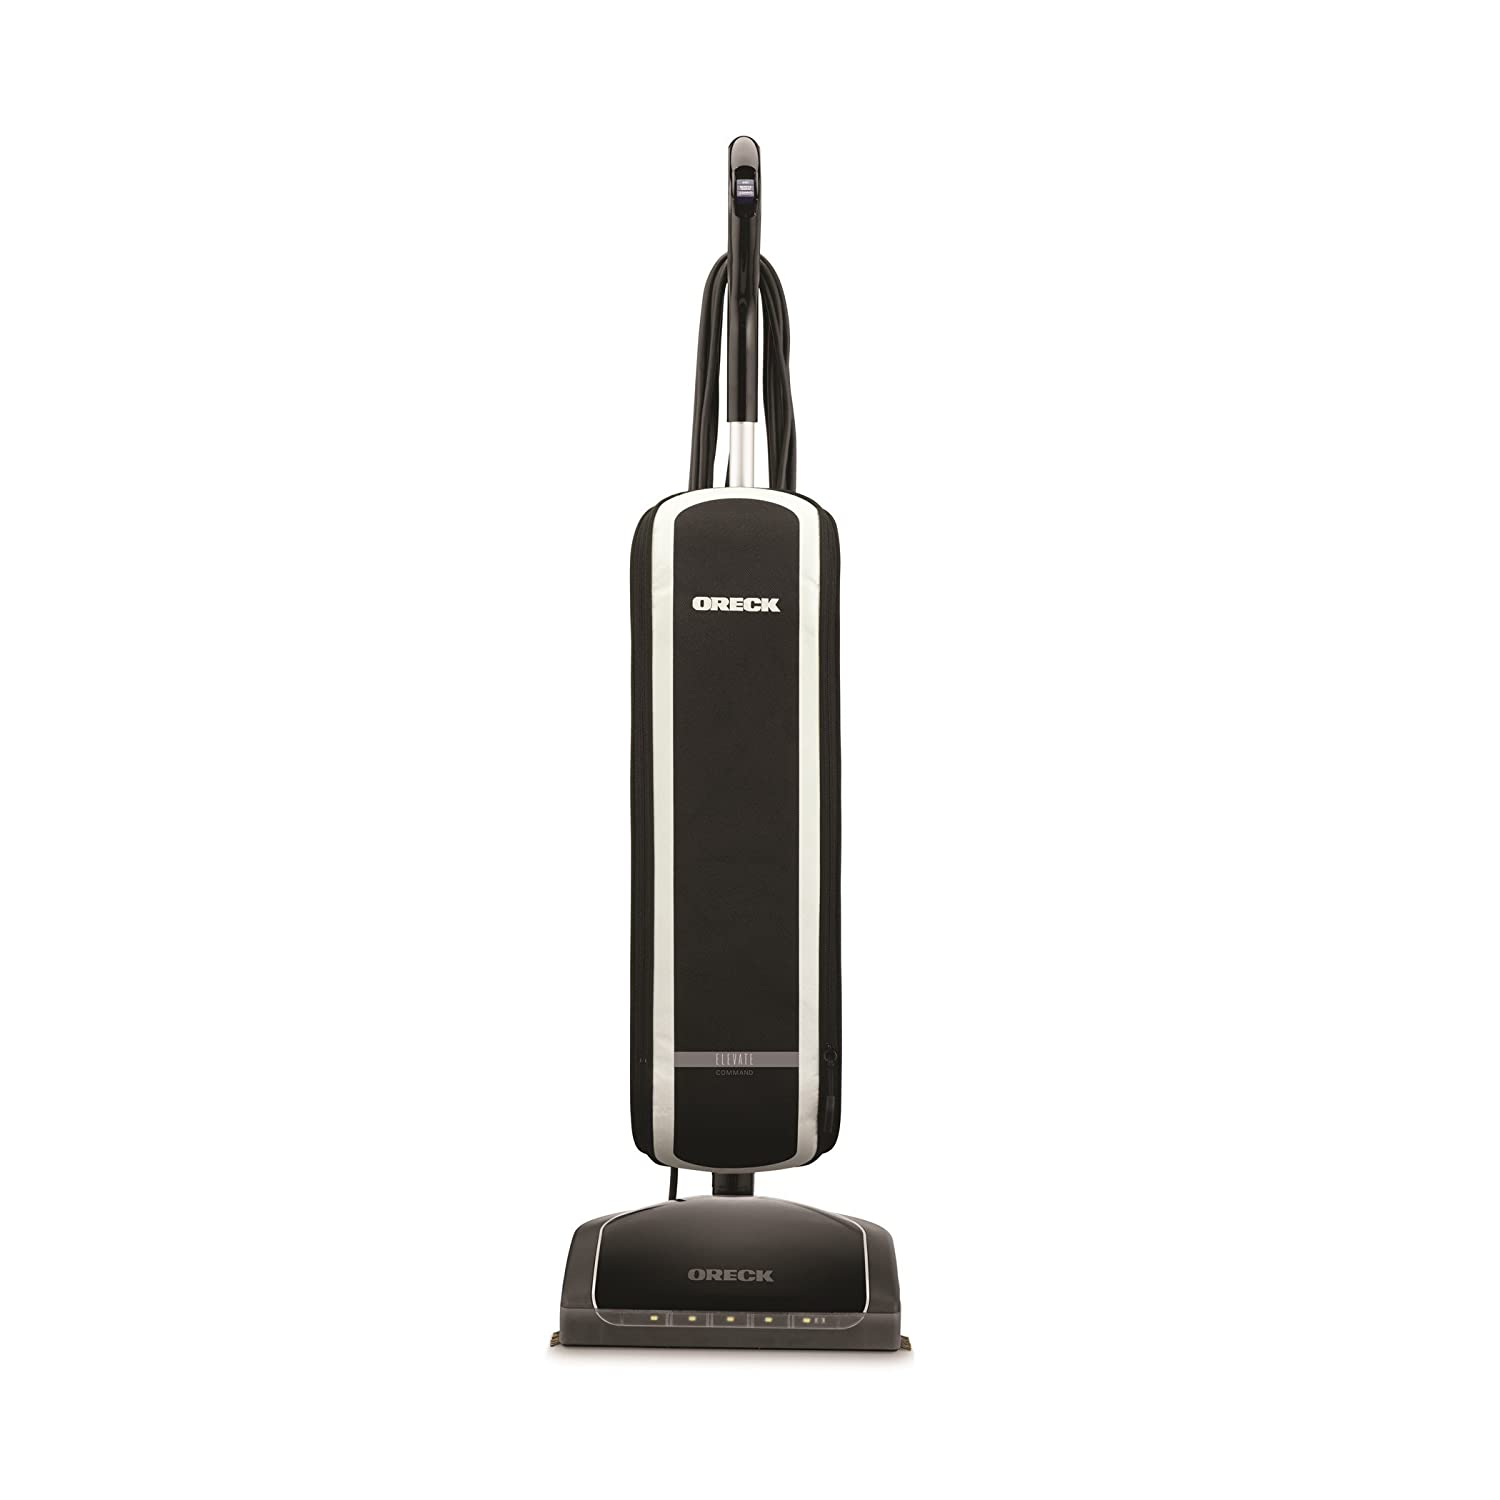 Oreck Elevate Command Bagged Upright Vacuum Cleaner, Lightweight, 30ft Power Cord, UK30200, Black